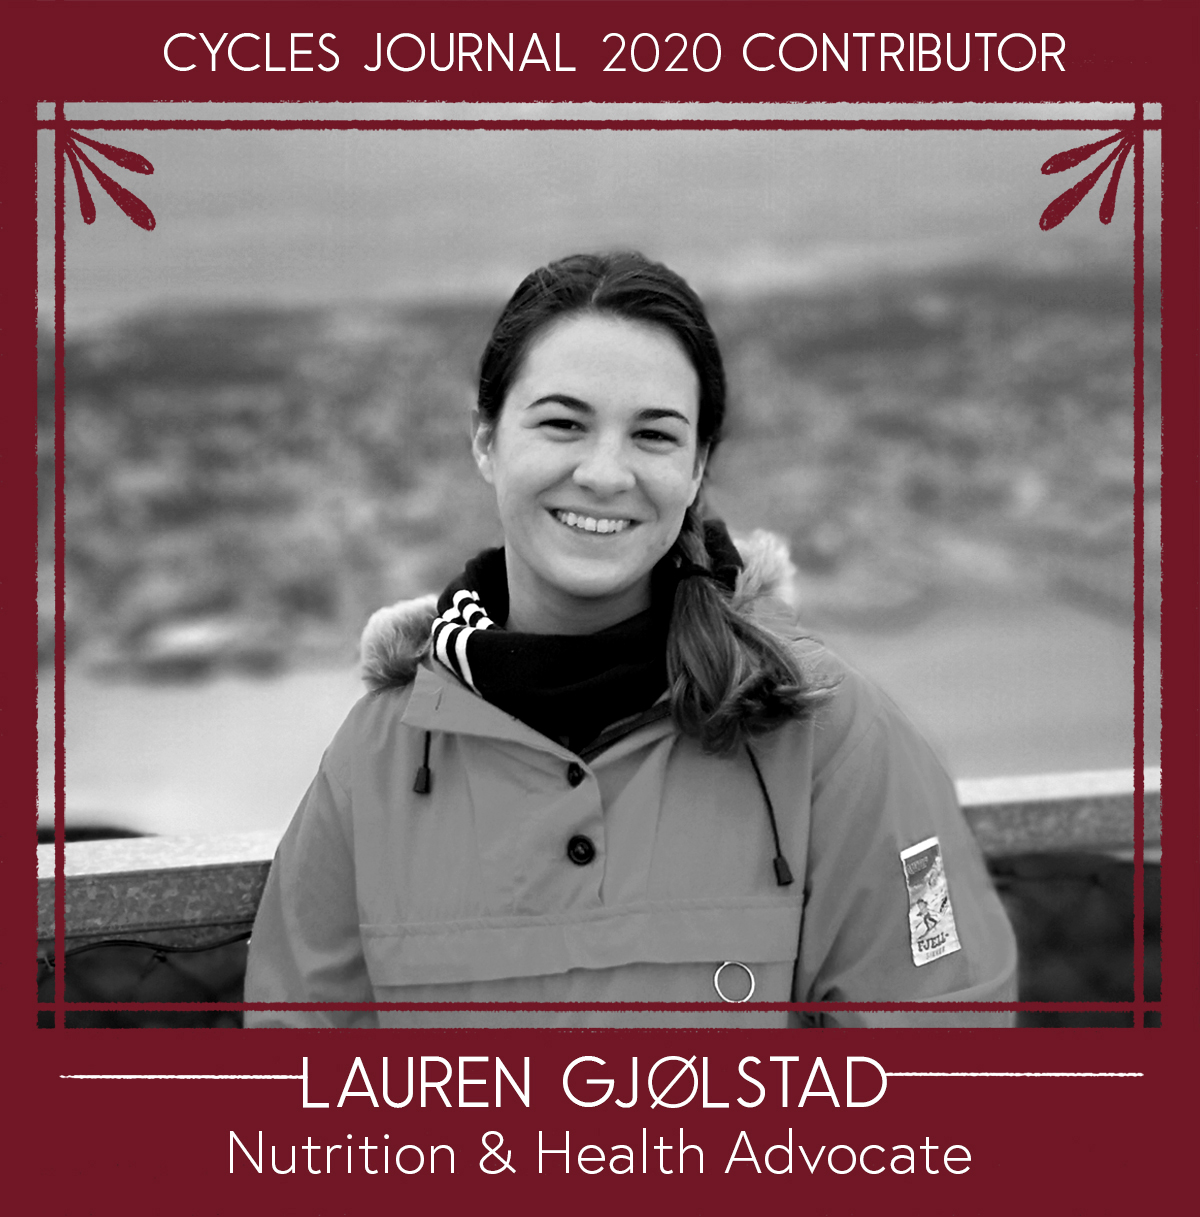 Lauren Gjølstad - Nutrition & Health AdvocateLauren has a degree in nutritional sciences from the Pennsylvania State University. Her passion for nutrition has always been connected to women's health and her areas of interest within the field are pregnancy and breastfeeding. She currently lives with her husband in Norway and spends her free time exploring the nature.LinkedIn: www.linkedin.com/in/lauren-melda-437135114/Email: laurenmelda (@) gmail.com